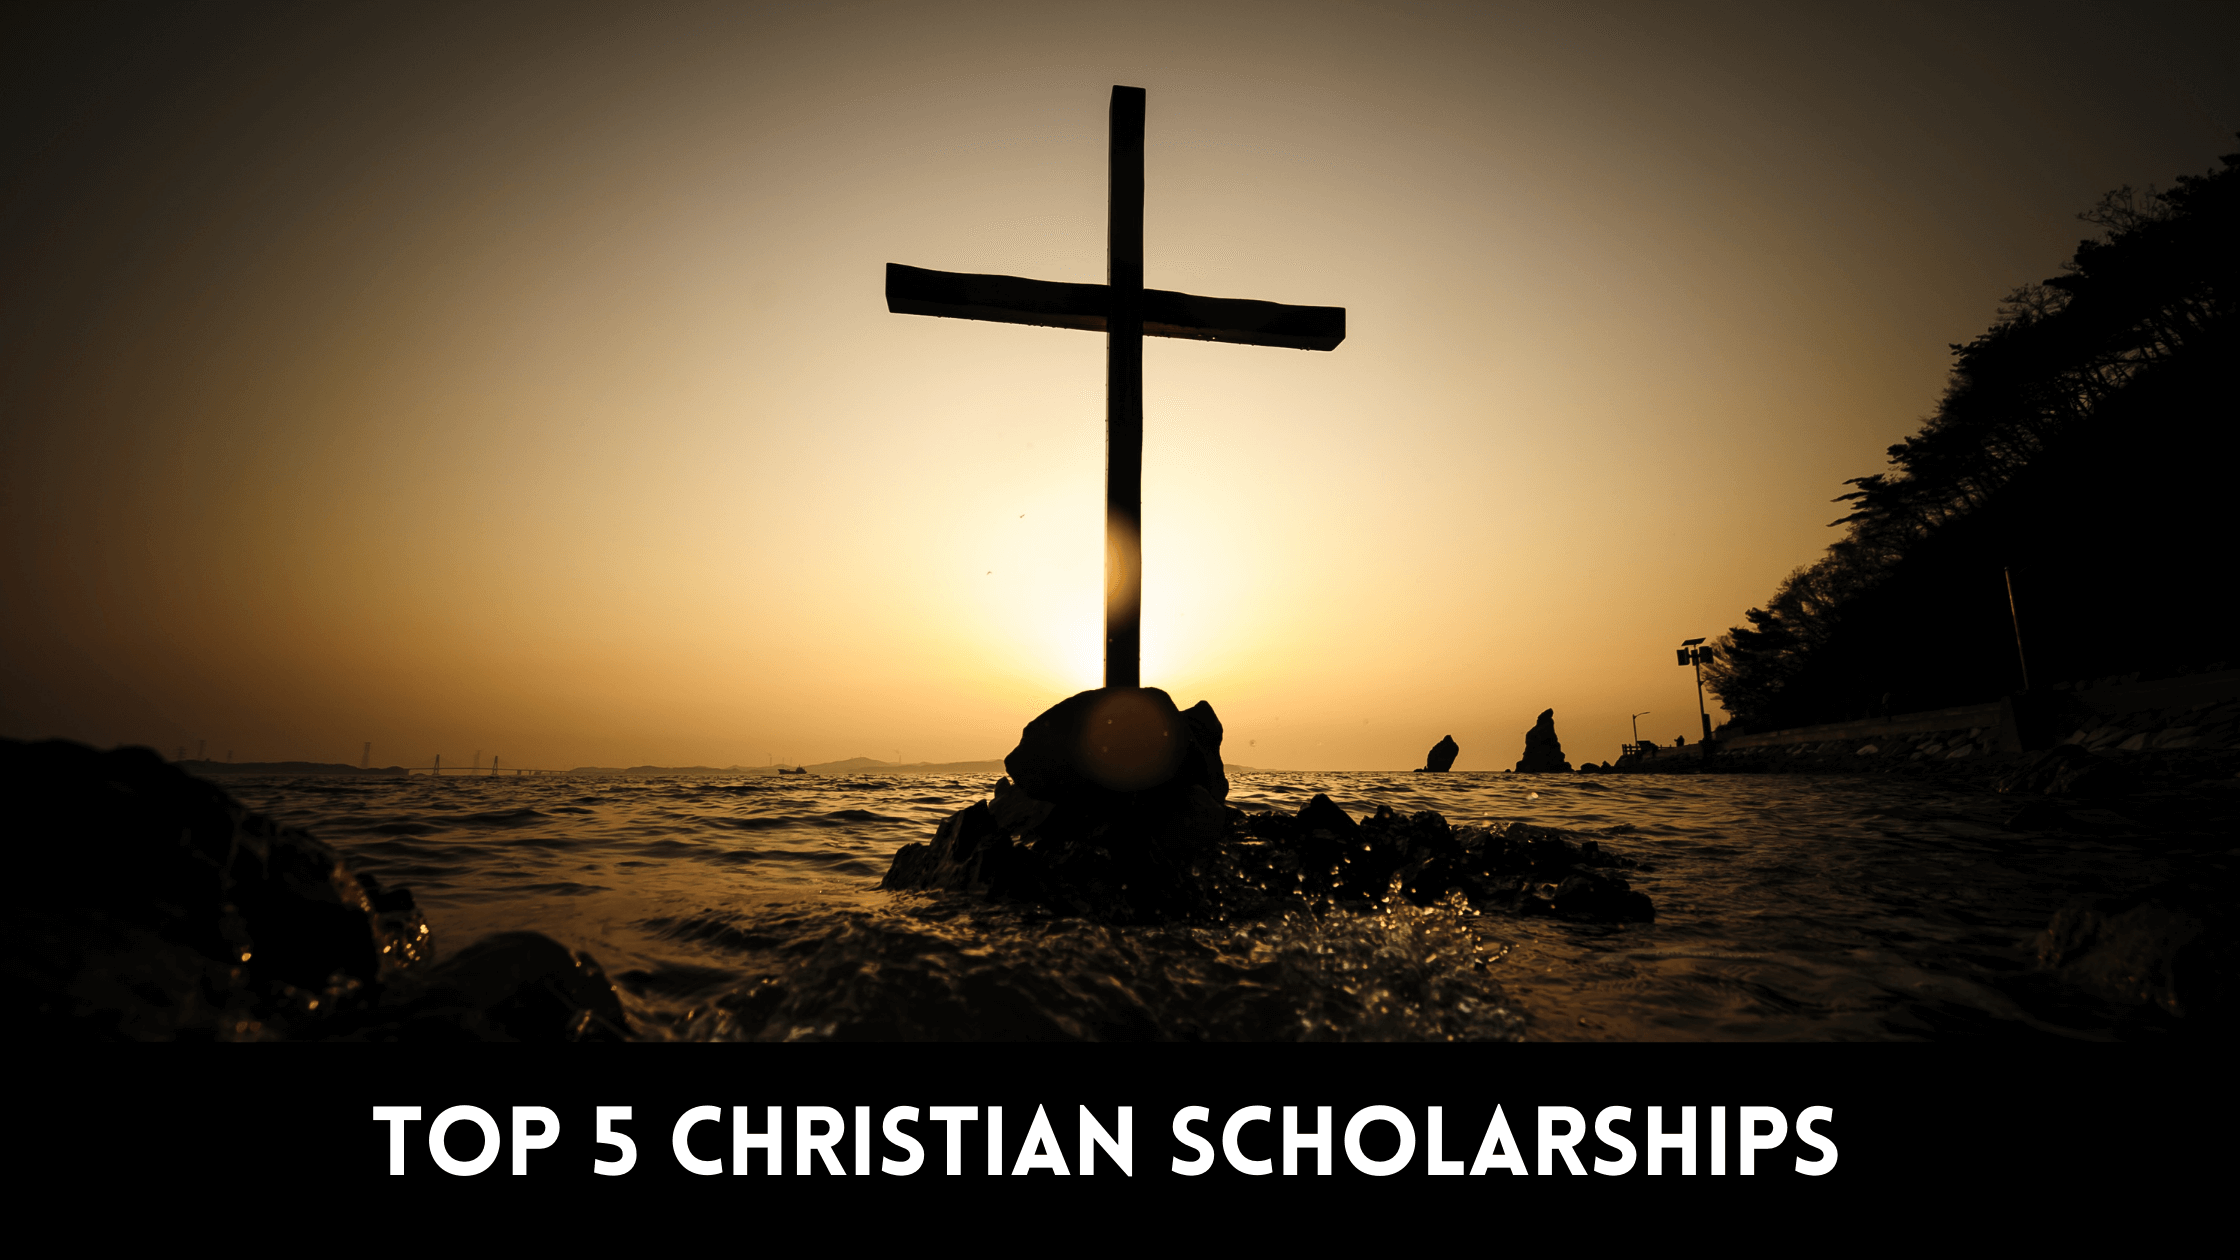 Top 5 Christian Scholarships